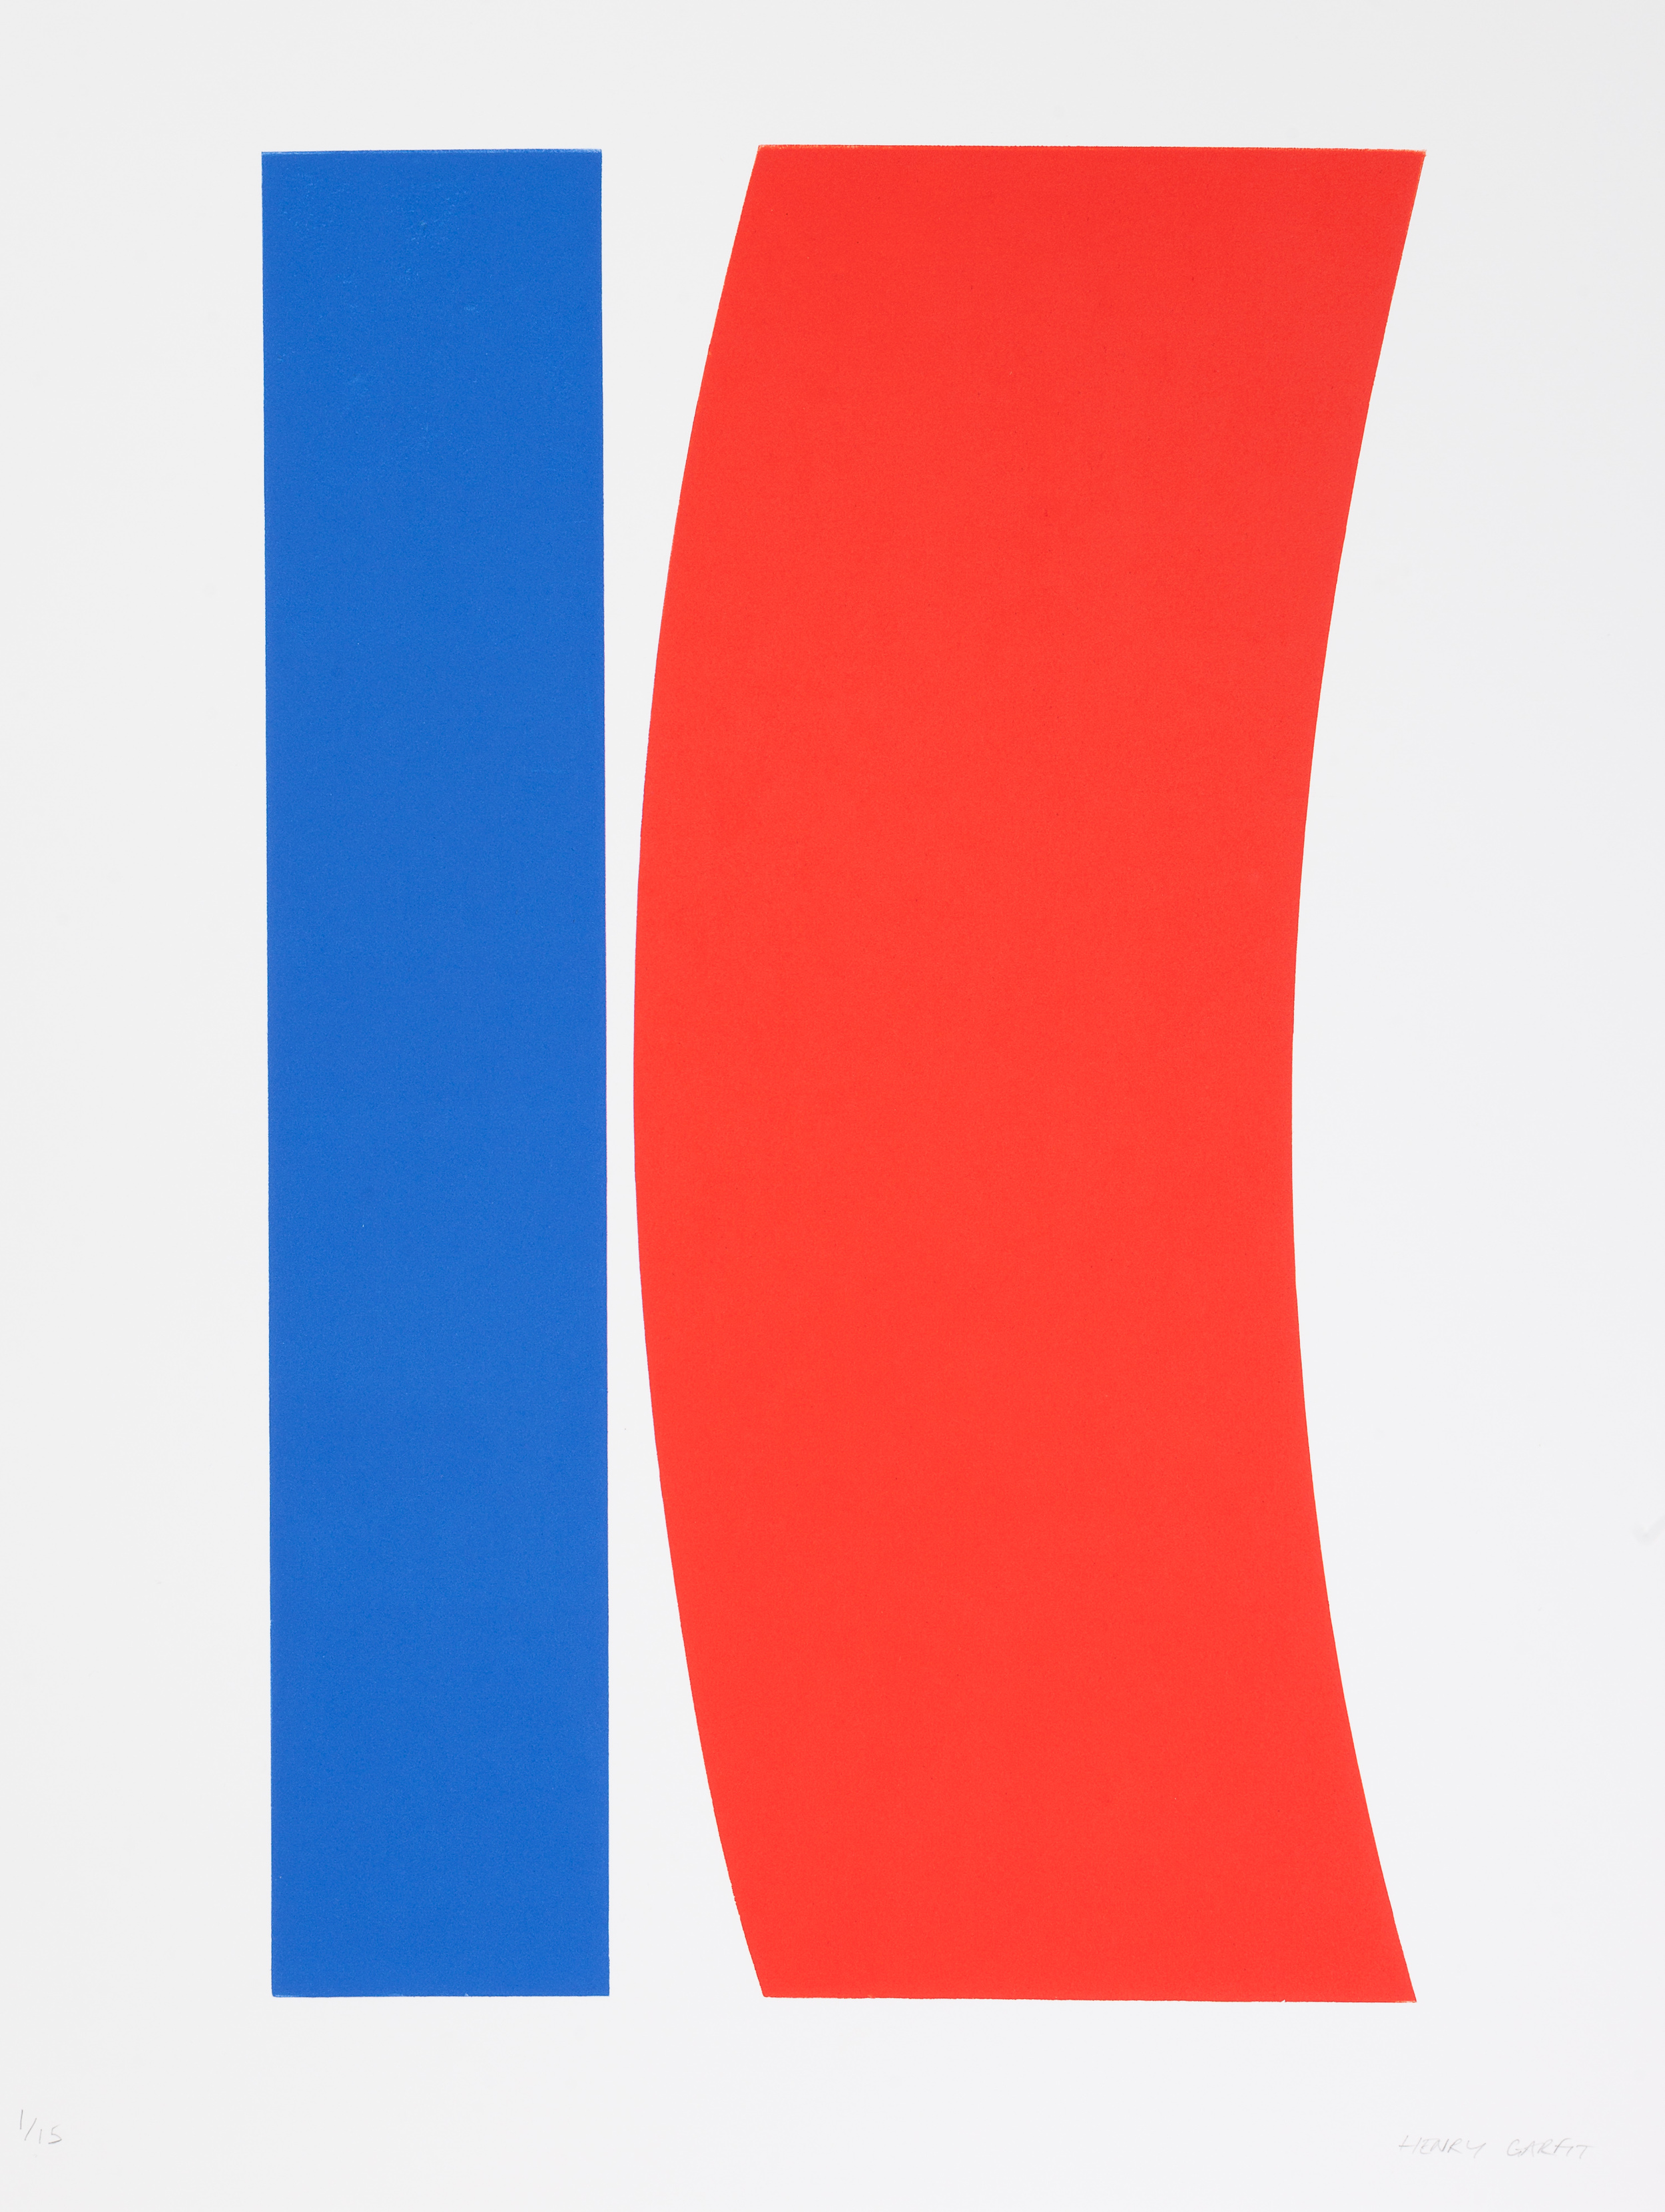 Henry Garfit   Blood Red Curve and Blue   76 x 57 cm   Relief print 1 / 10   £ 595.00